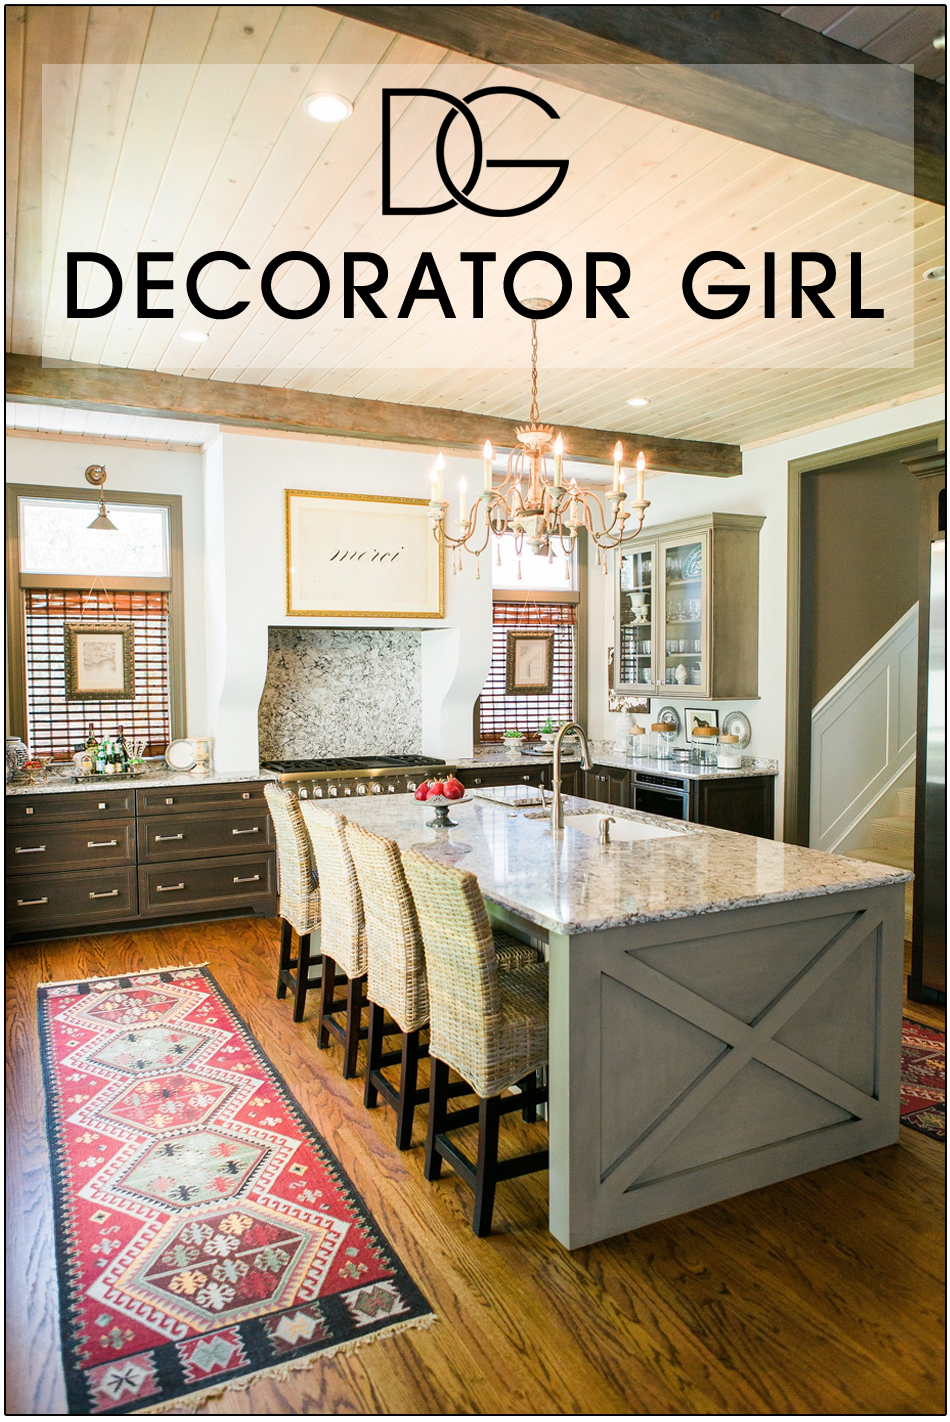 Decorator Girl